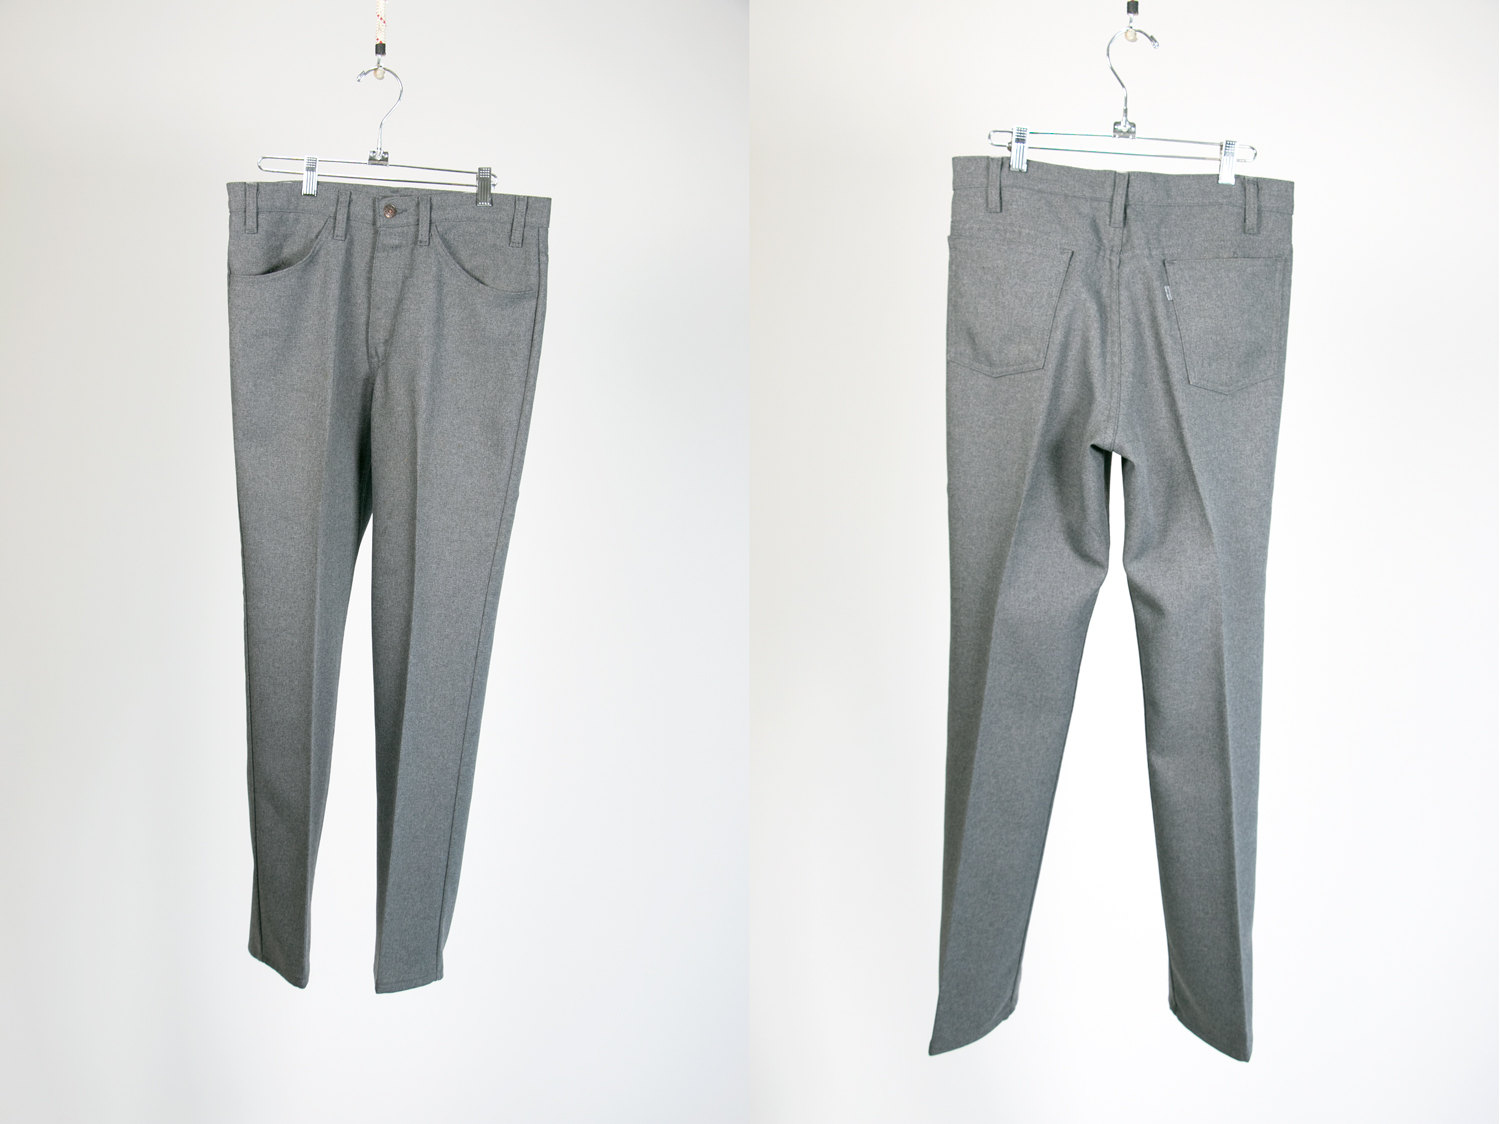 Vintage 1970's Levi's Sta-Prest W33 L30 Spotted Grey Charcoal Pants